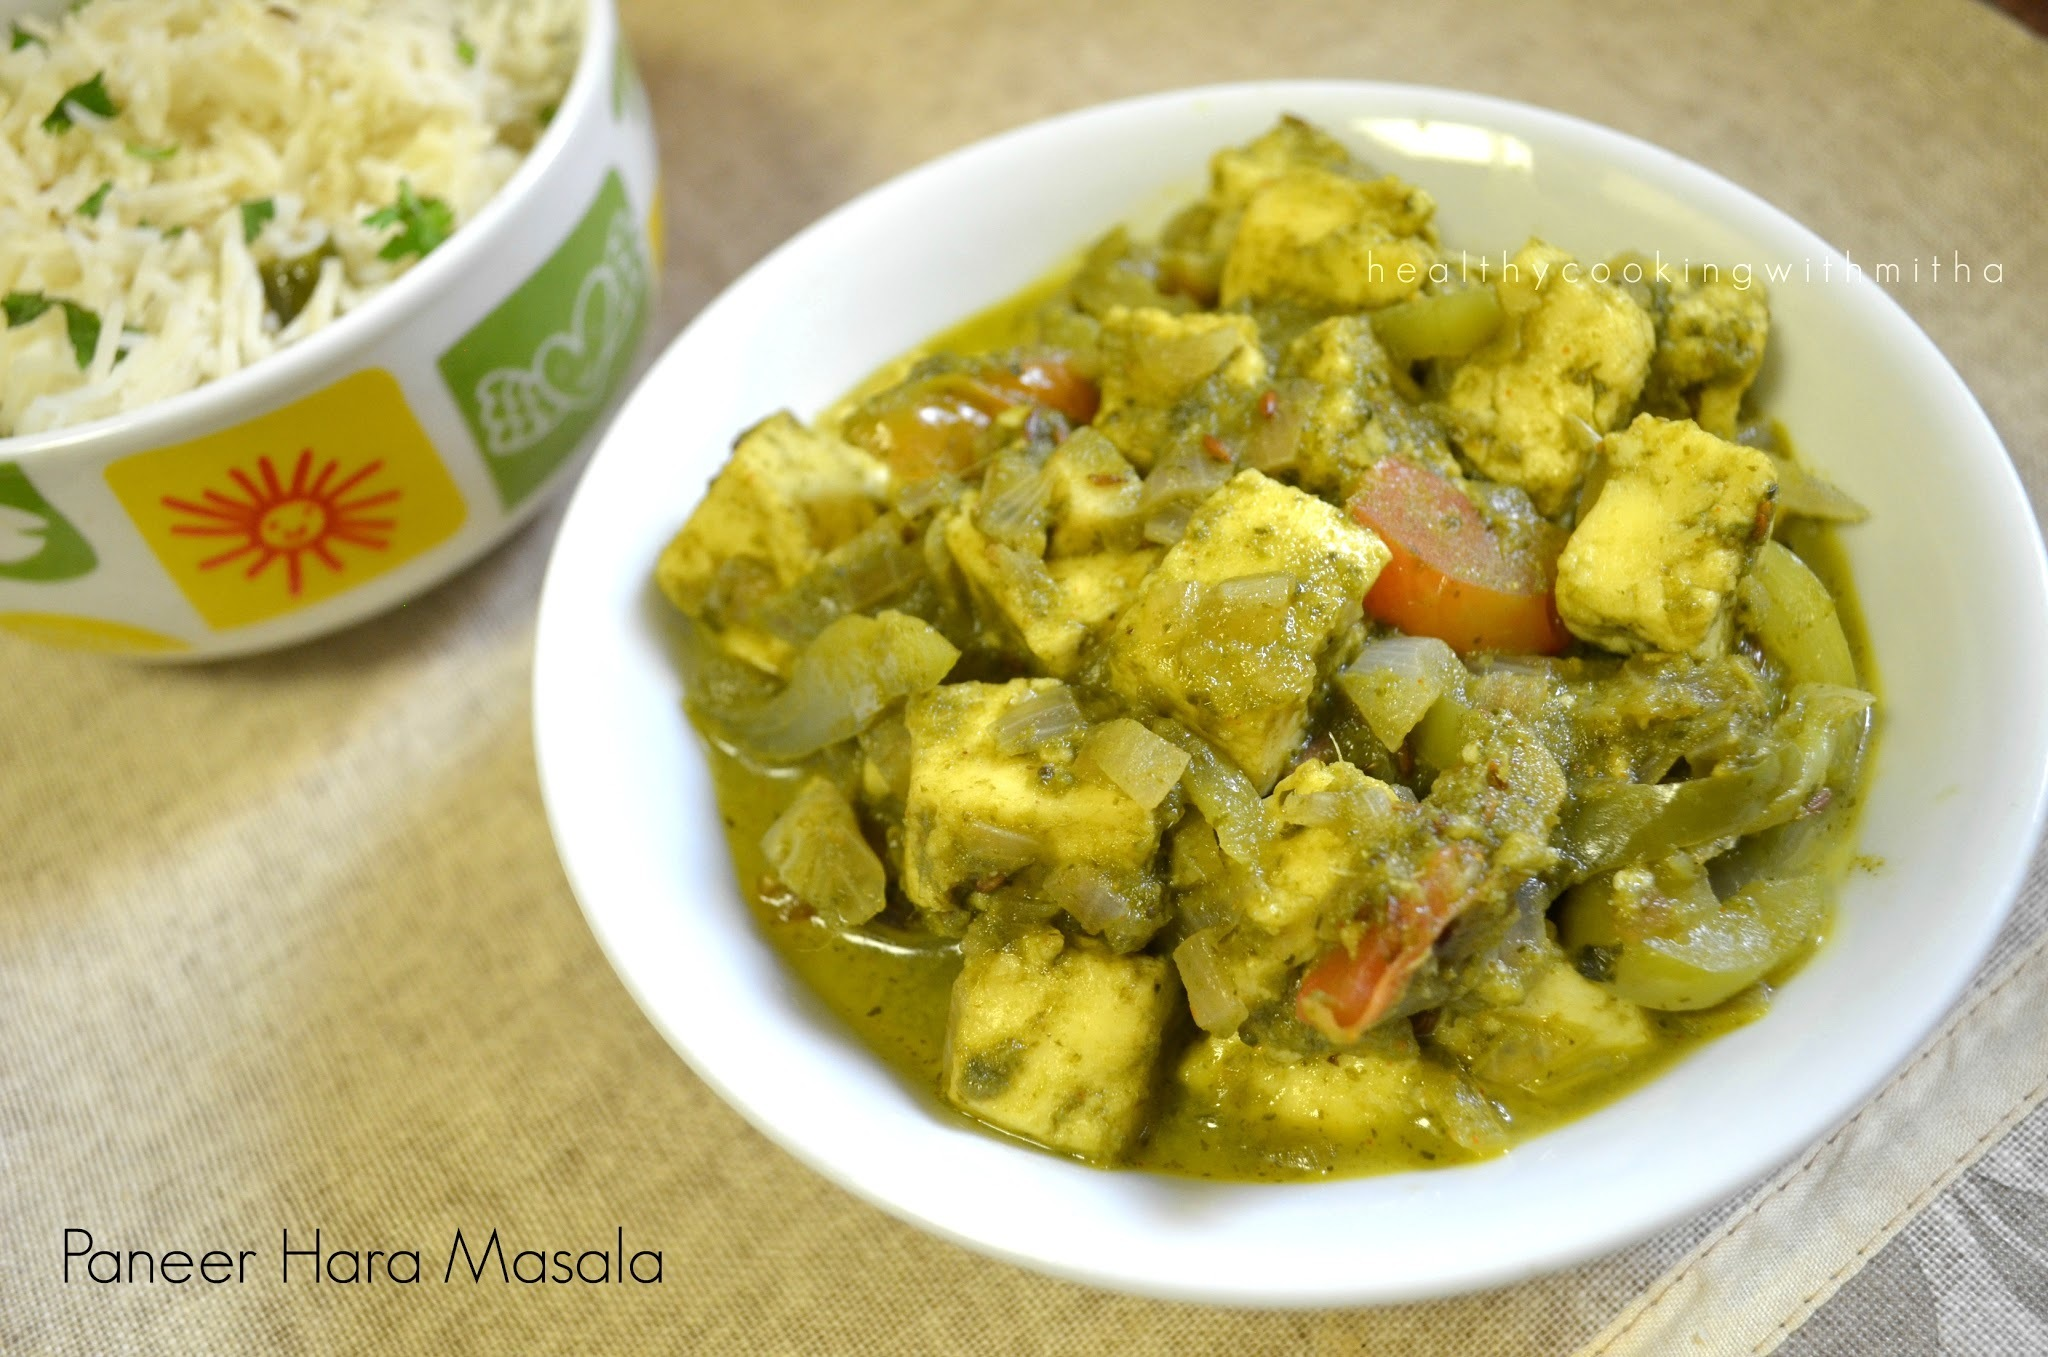 Paneer Hara Masala | Cottage cheese in green gravy